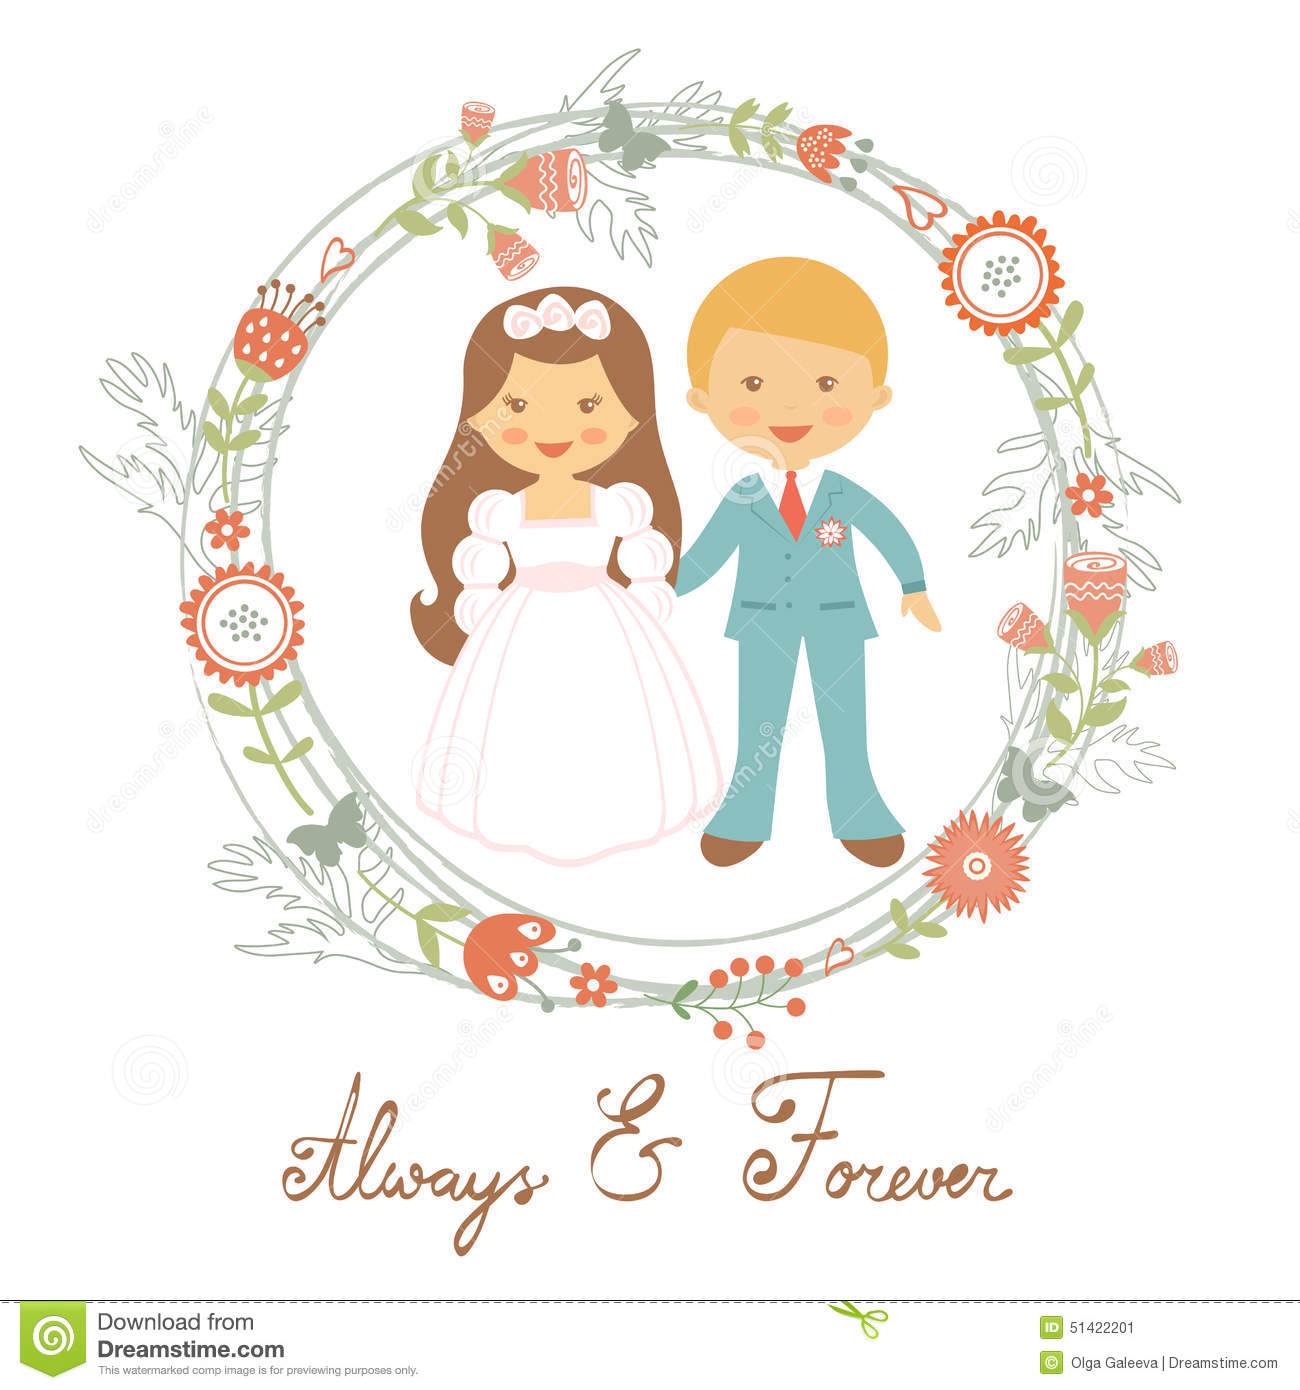 Cute wedding couple stock vector. Illustration of smiling ...